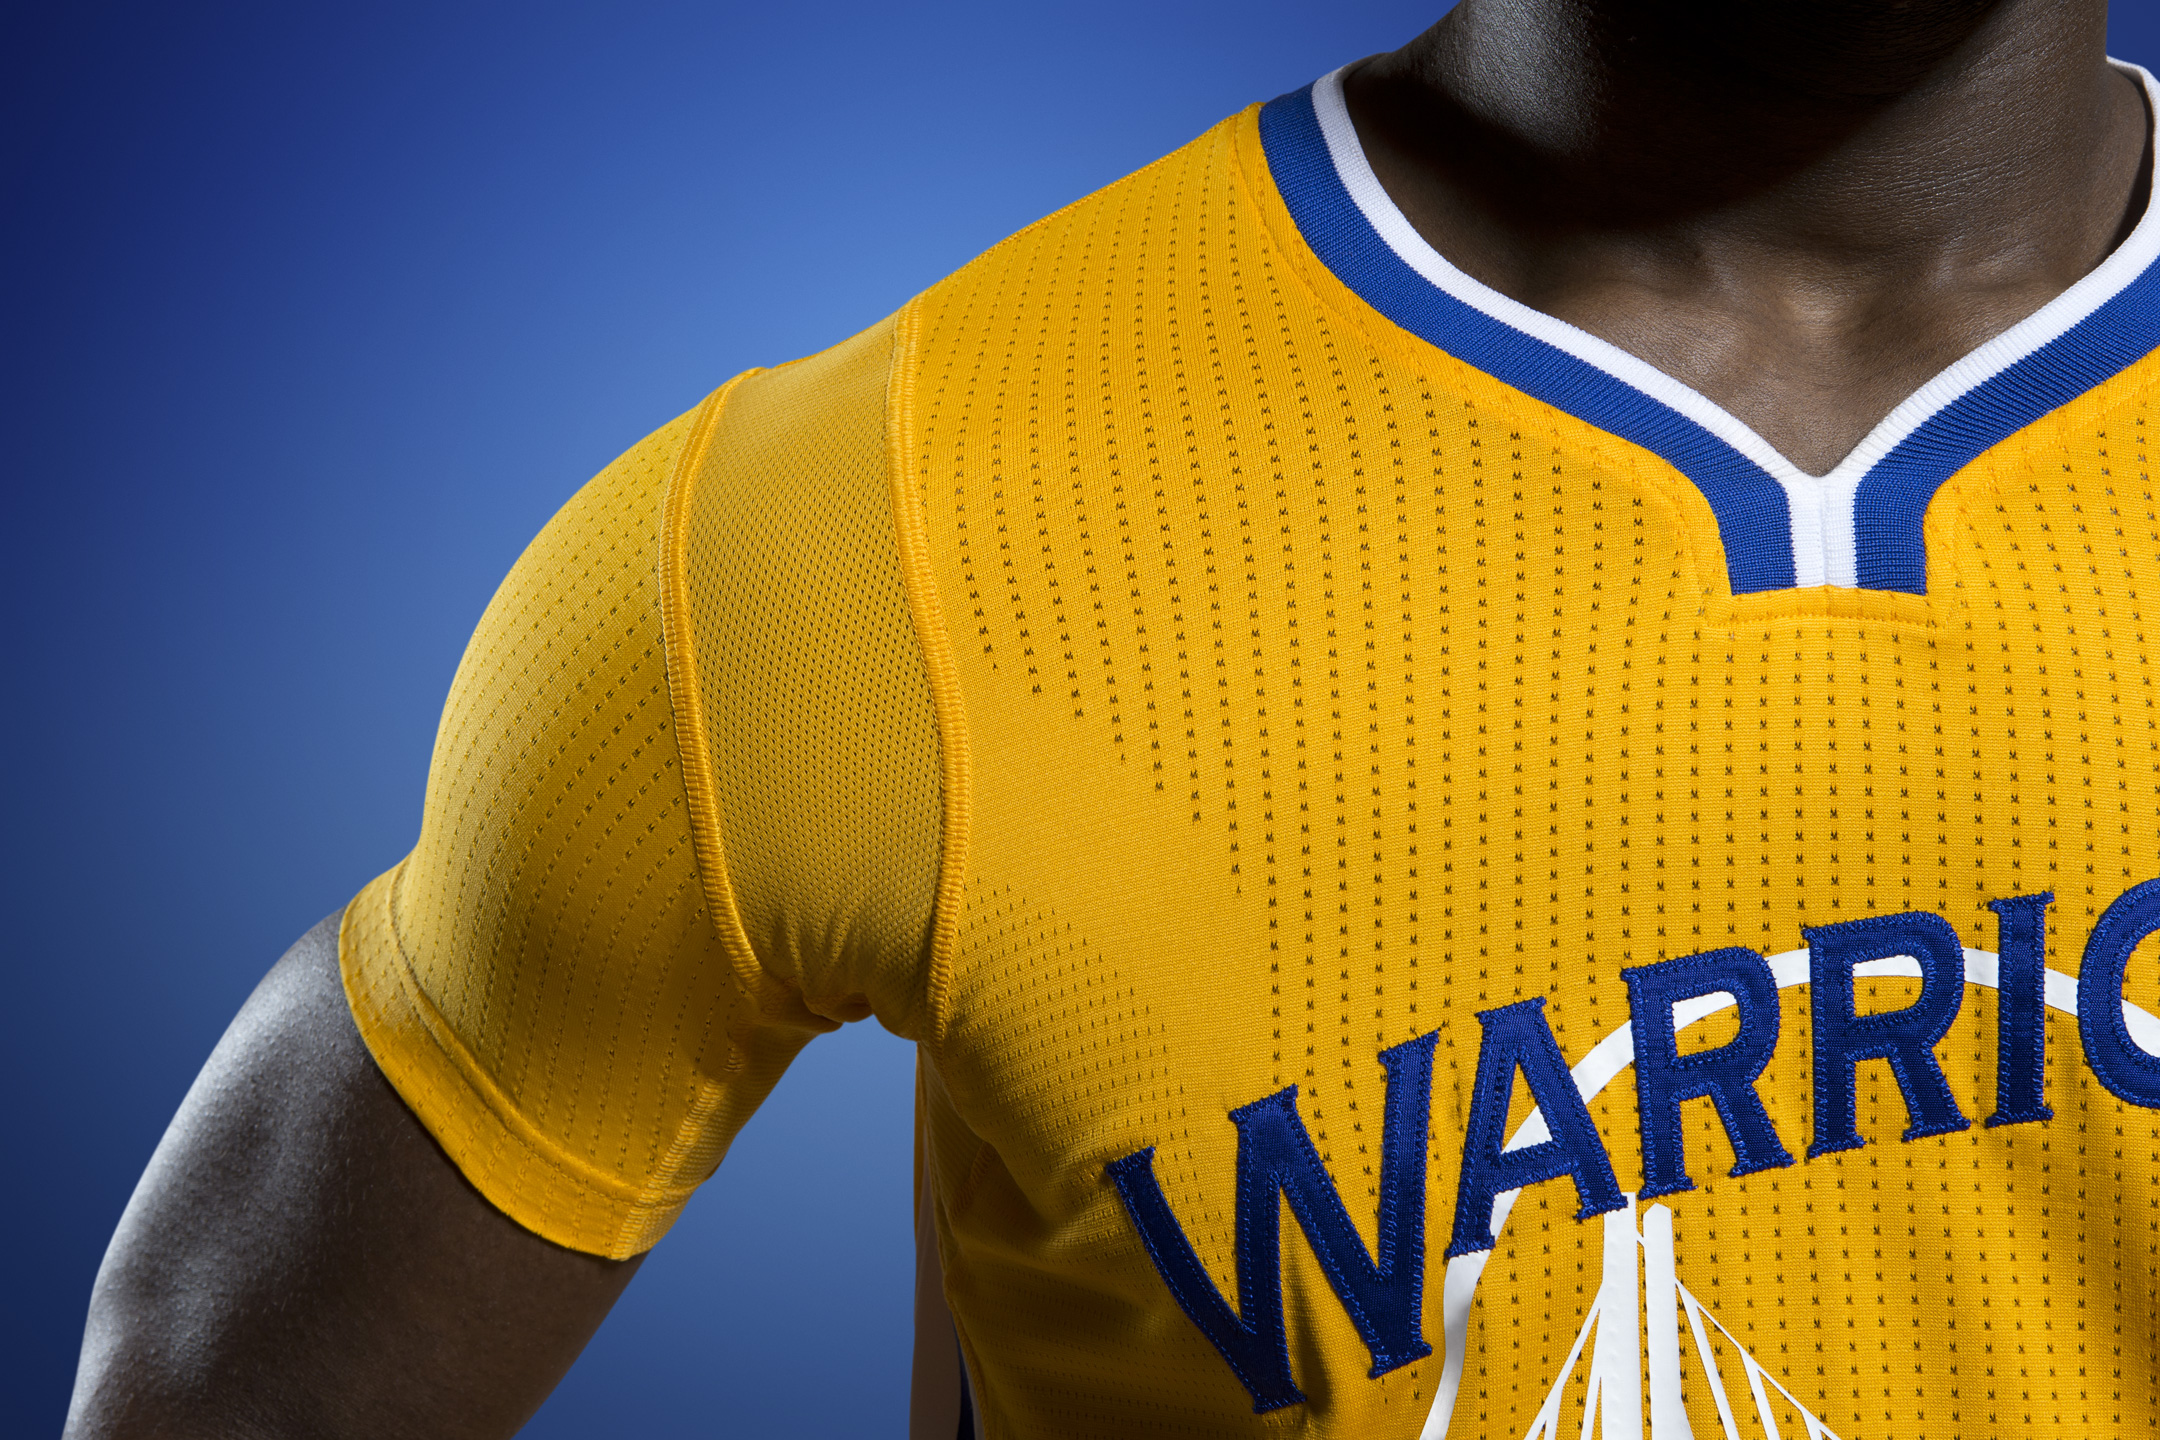 GOLDEN STATE WARRIORS Nba Basketball yellow uniform Wallpapers HD 2160x1440